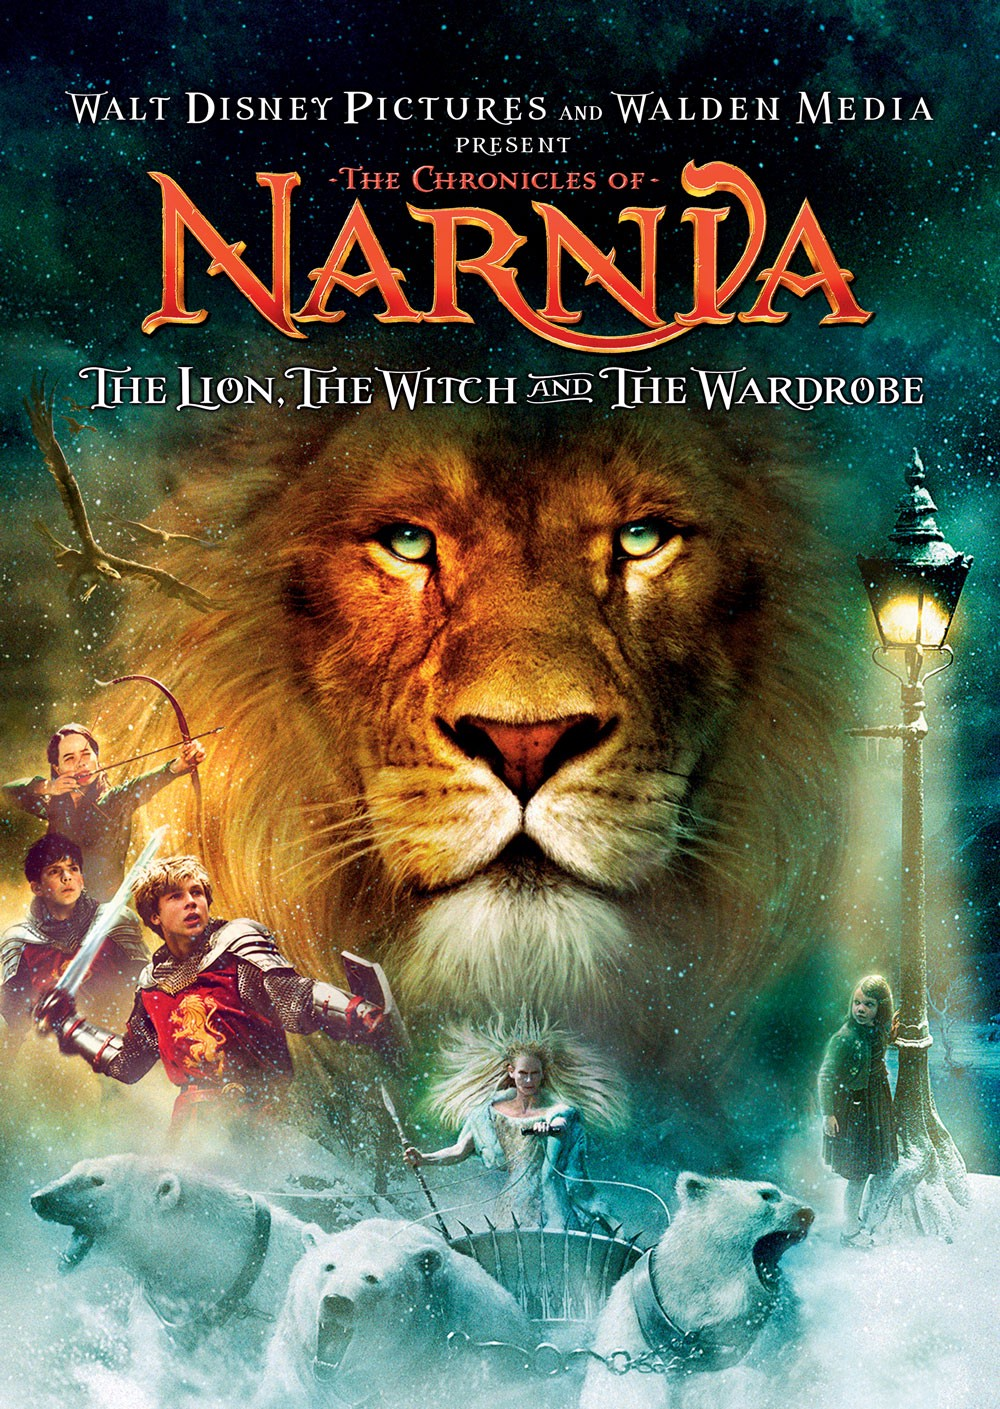 The Chronicles of Narnia: The Lion, The Witch and the Wardrobe [2005] [DVDR] [NTSC] [Latino]